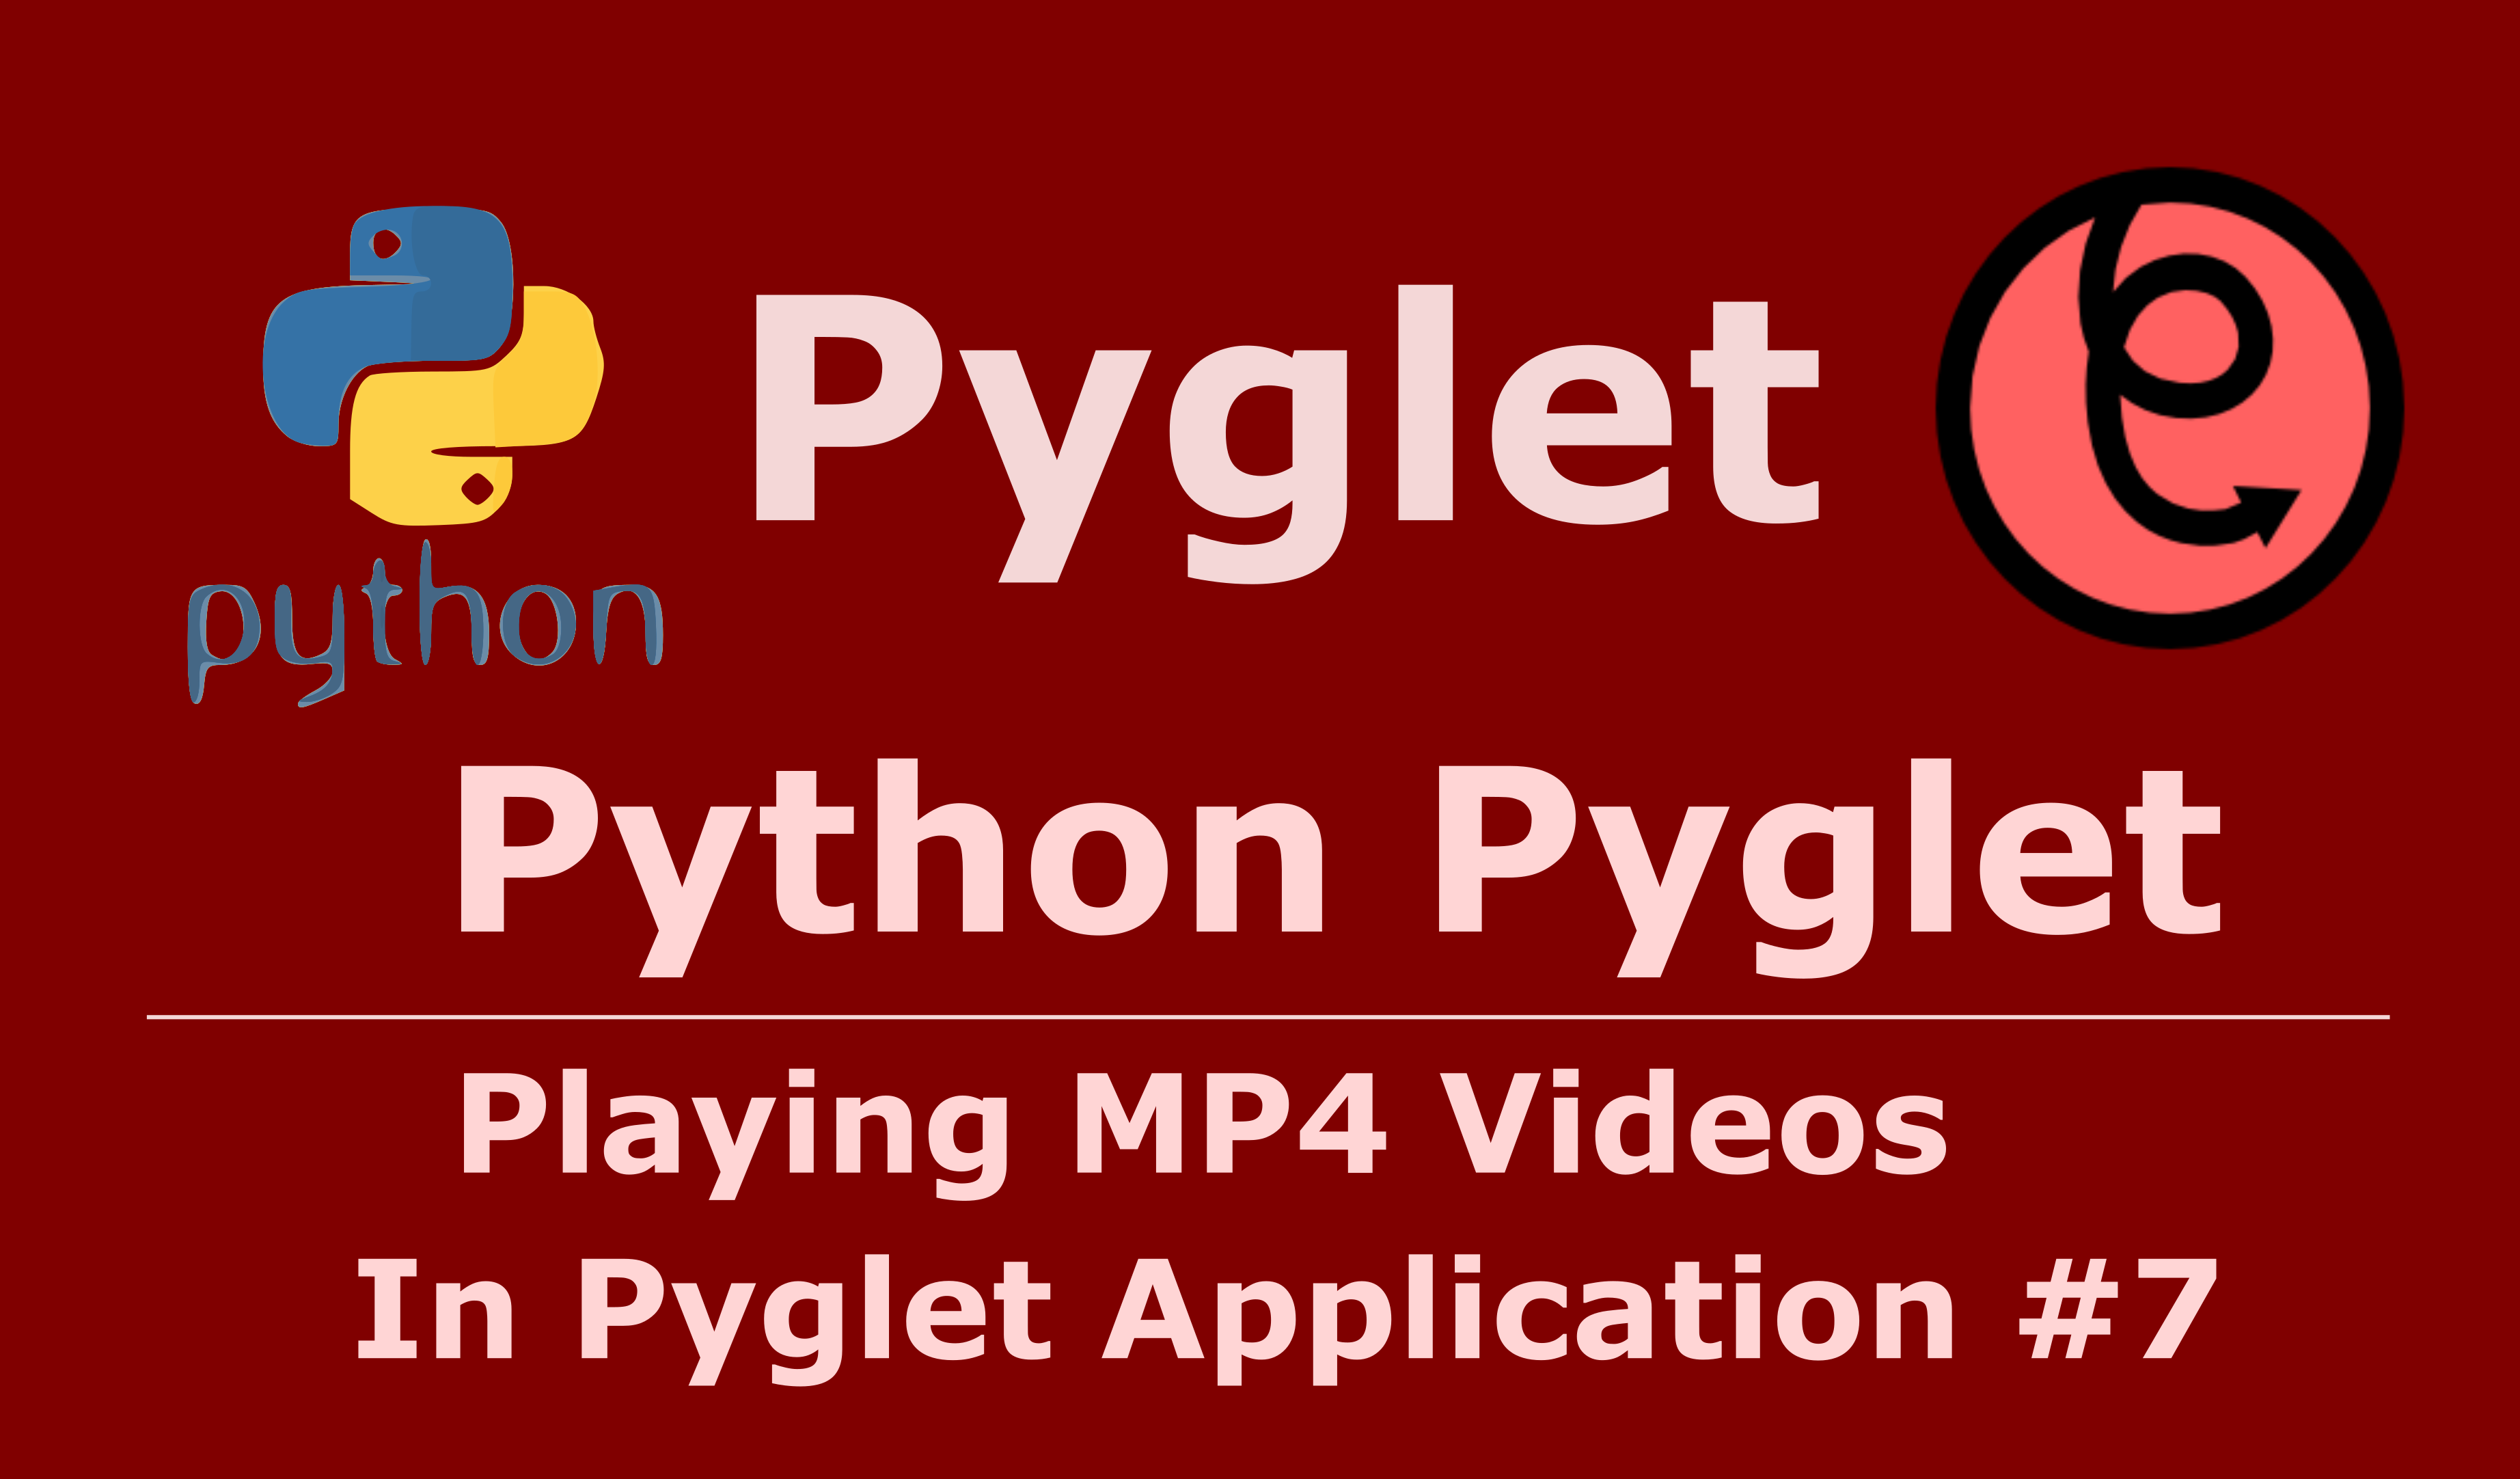 How To Play Mp4 Videos In Python Pyglet - Code Loop